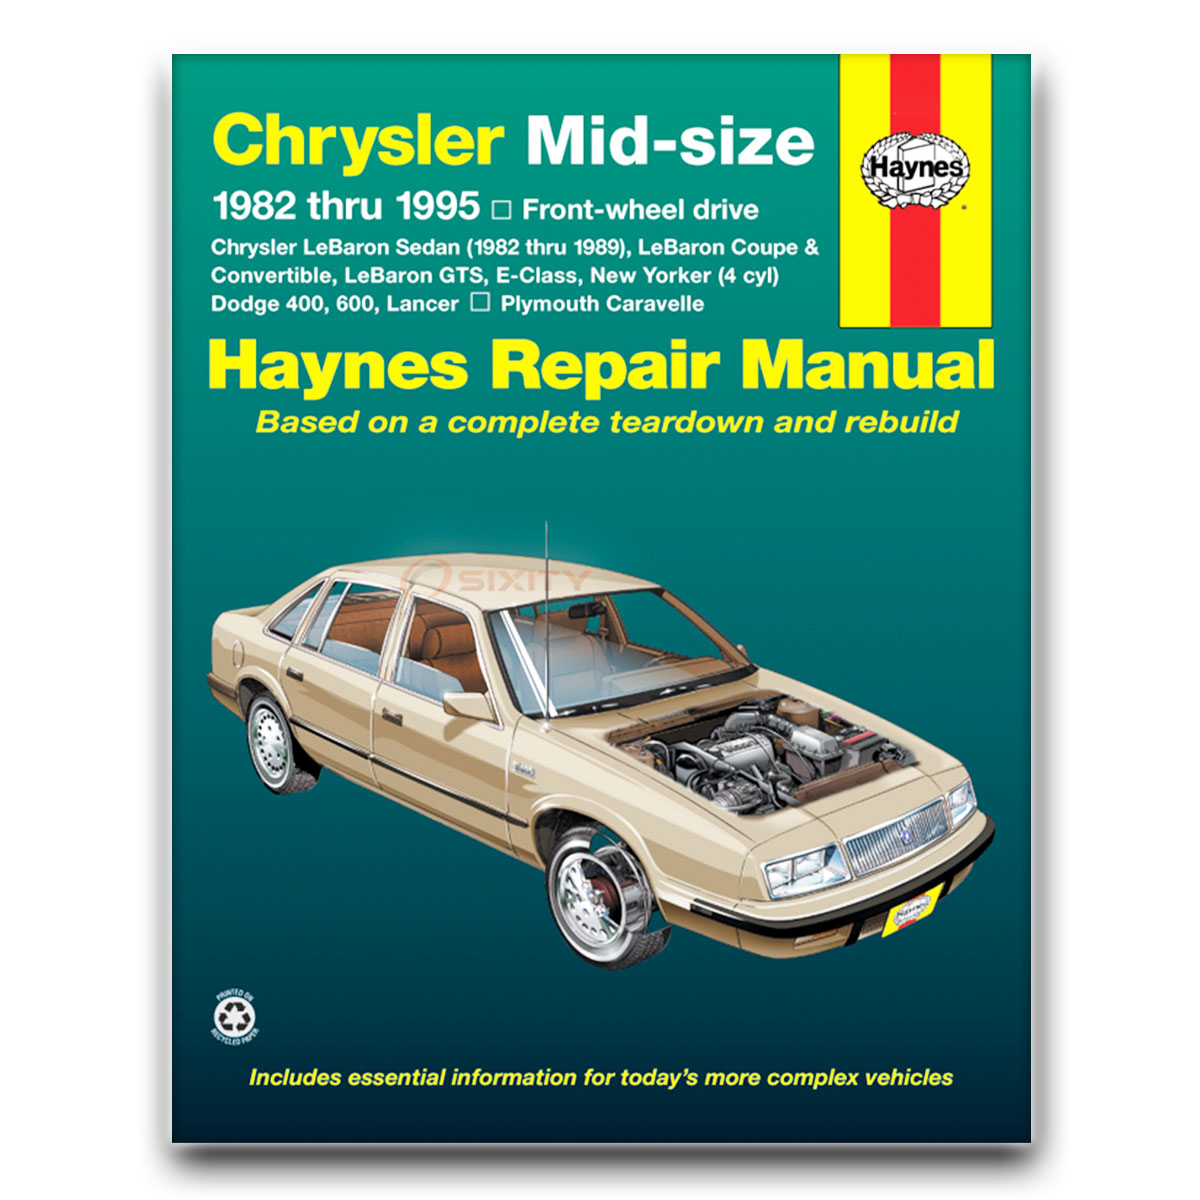 chrysler lebaron haynes manual reparacion lx linea alta le base rh ebay com 1994 chrysler lebaron owners manual 1990 Chrysler LeBaron